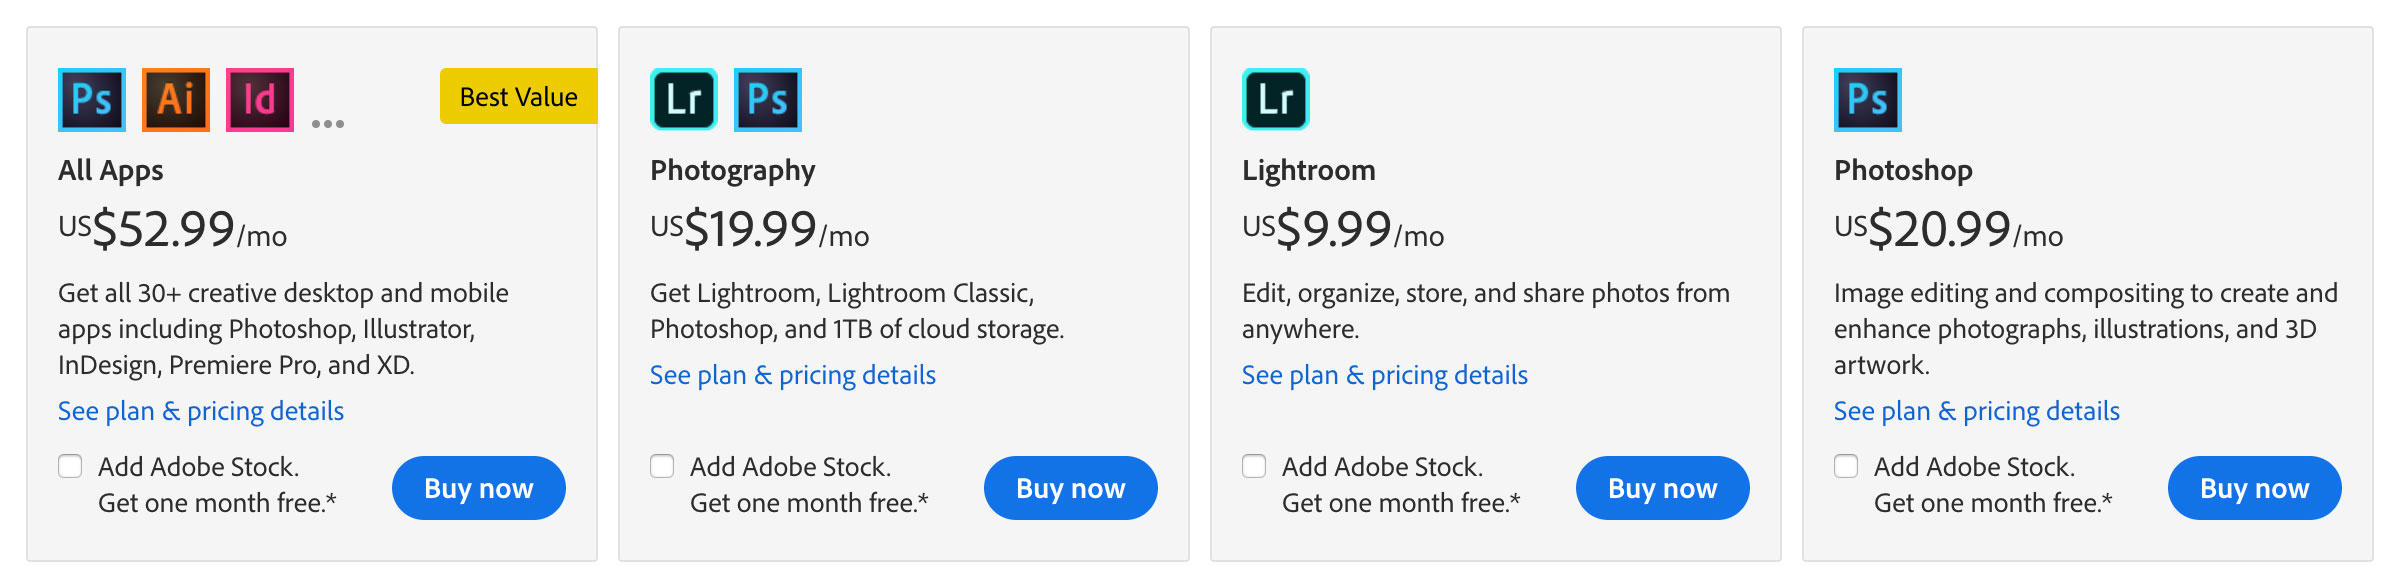 Adobe tested the removal of a $10 monthly plan from its website. It left in place alternatives with different combinations of cloud storage space and photography software.